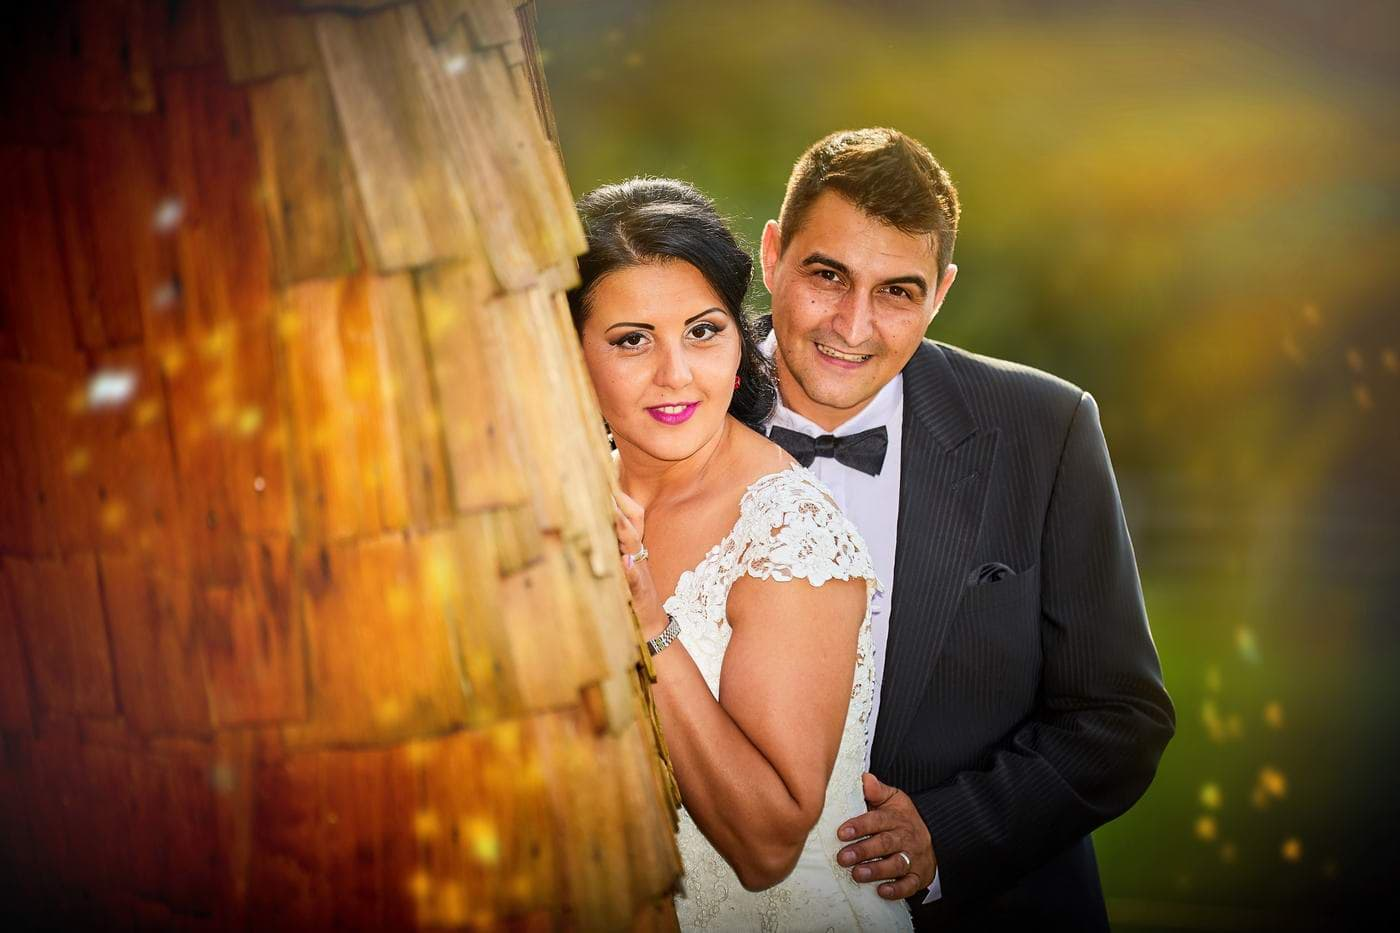 Trash the dress de basm